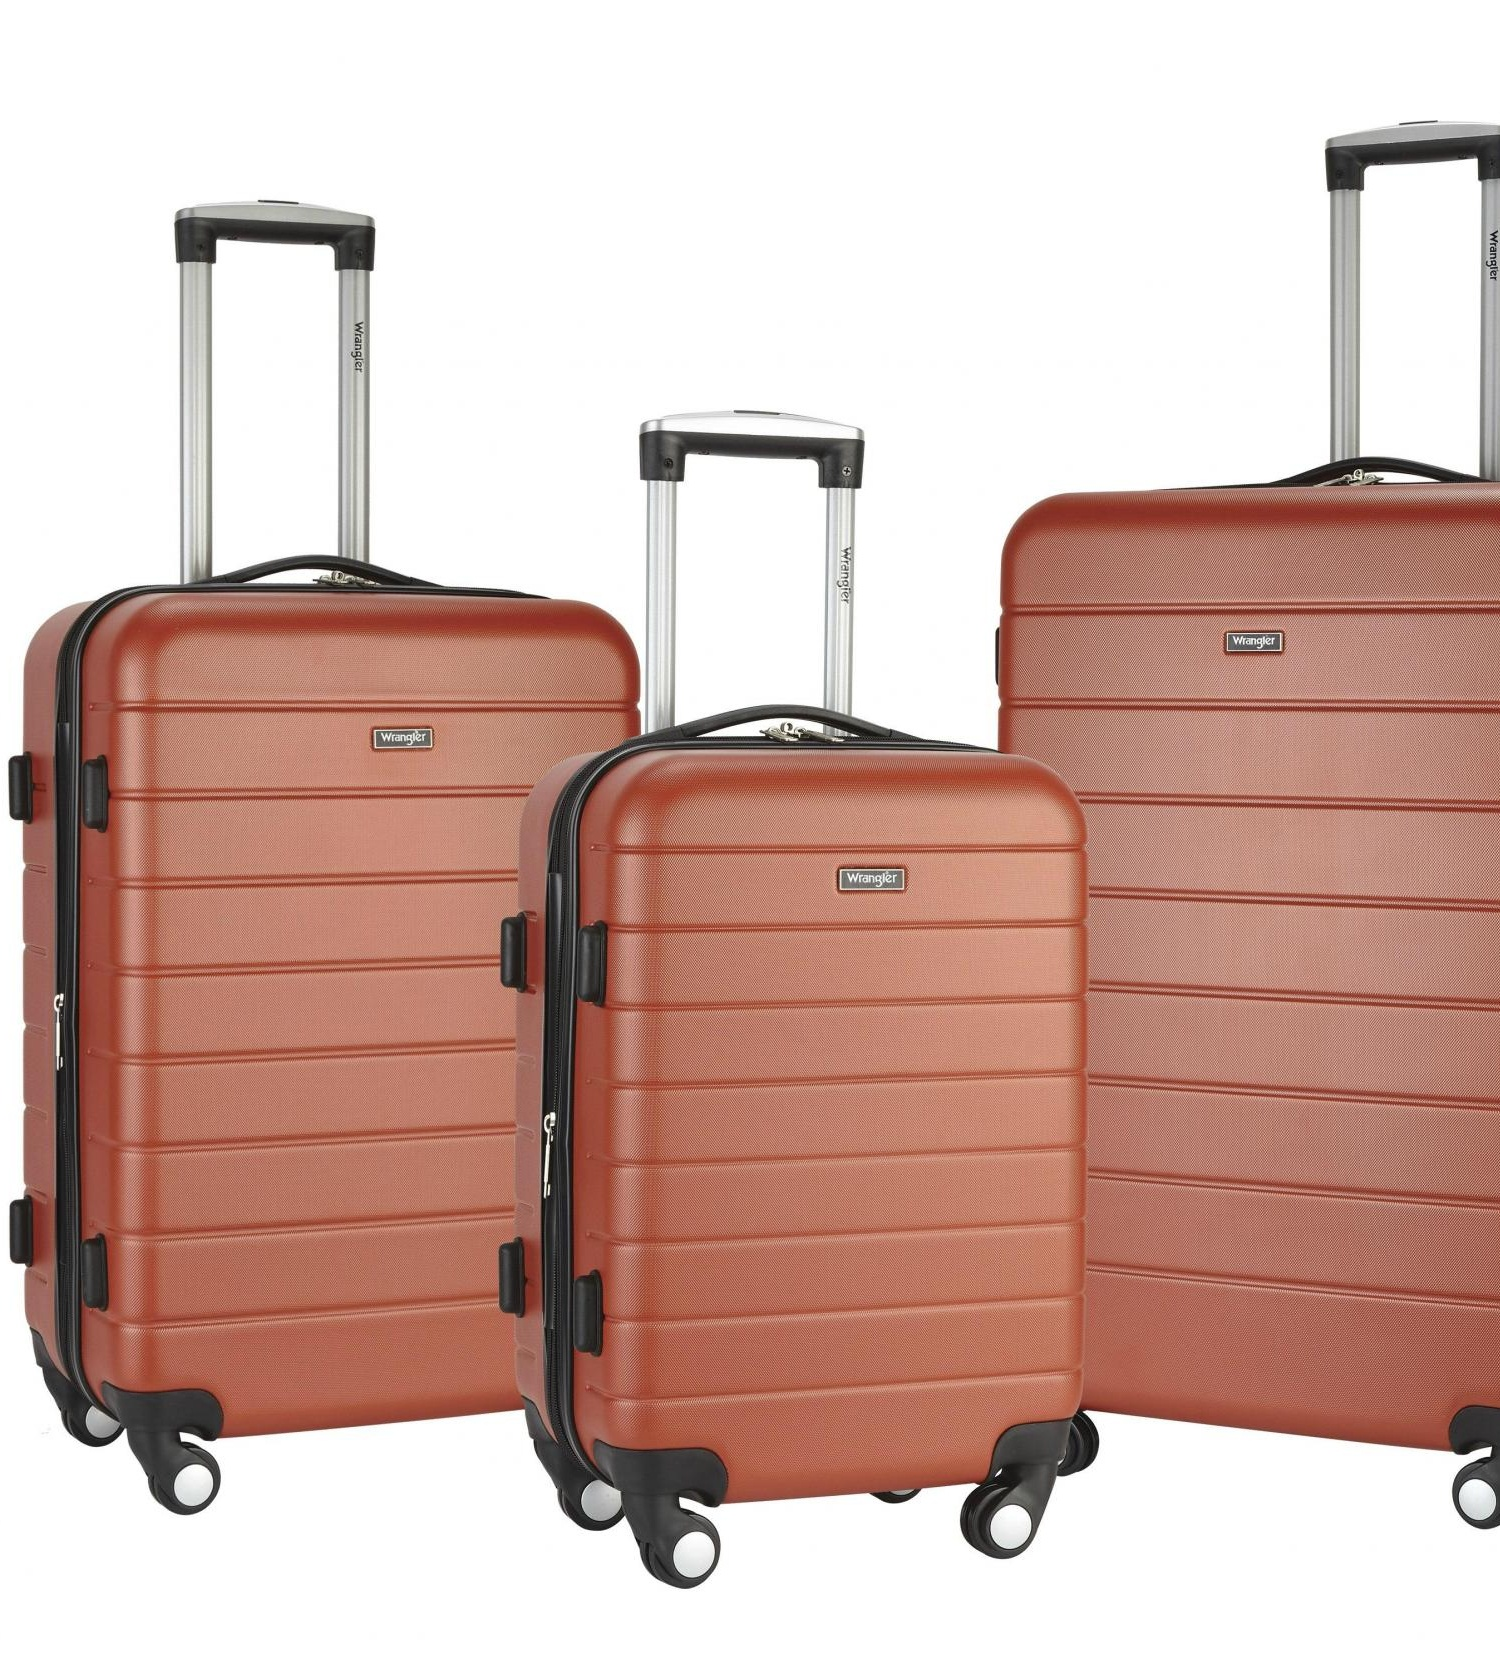 3-N-1 3-Piece Hardside Luggage Collection